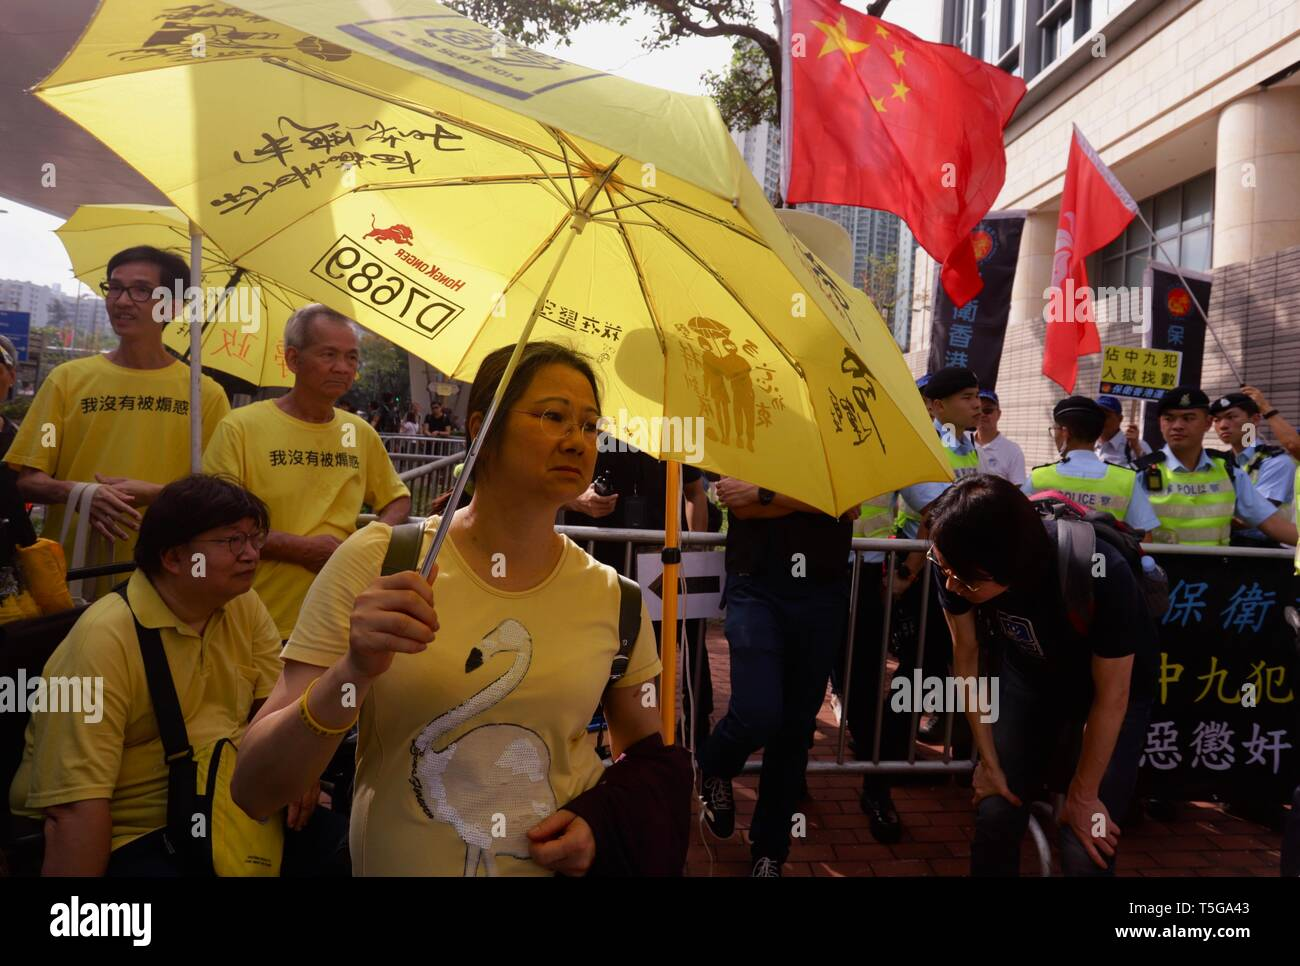 Hong Kong. 24th Apr, 2019. Supporters of the 2014 Umbrella Movement defiantly display their symbol, YELLOW UMBRELLA in front of the pro-China supporters outside West Kowloon Court this morning.April-24, 2019 Hong Kong.ZUMA/Liau Chung-ren Credit: Liau Chung-ren/ZUMA Wire/Alamy Live News - Stock Image